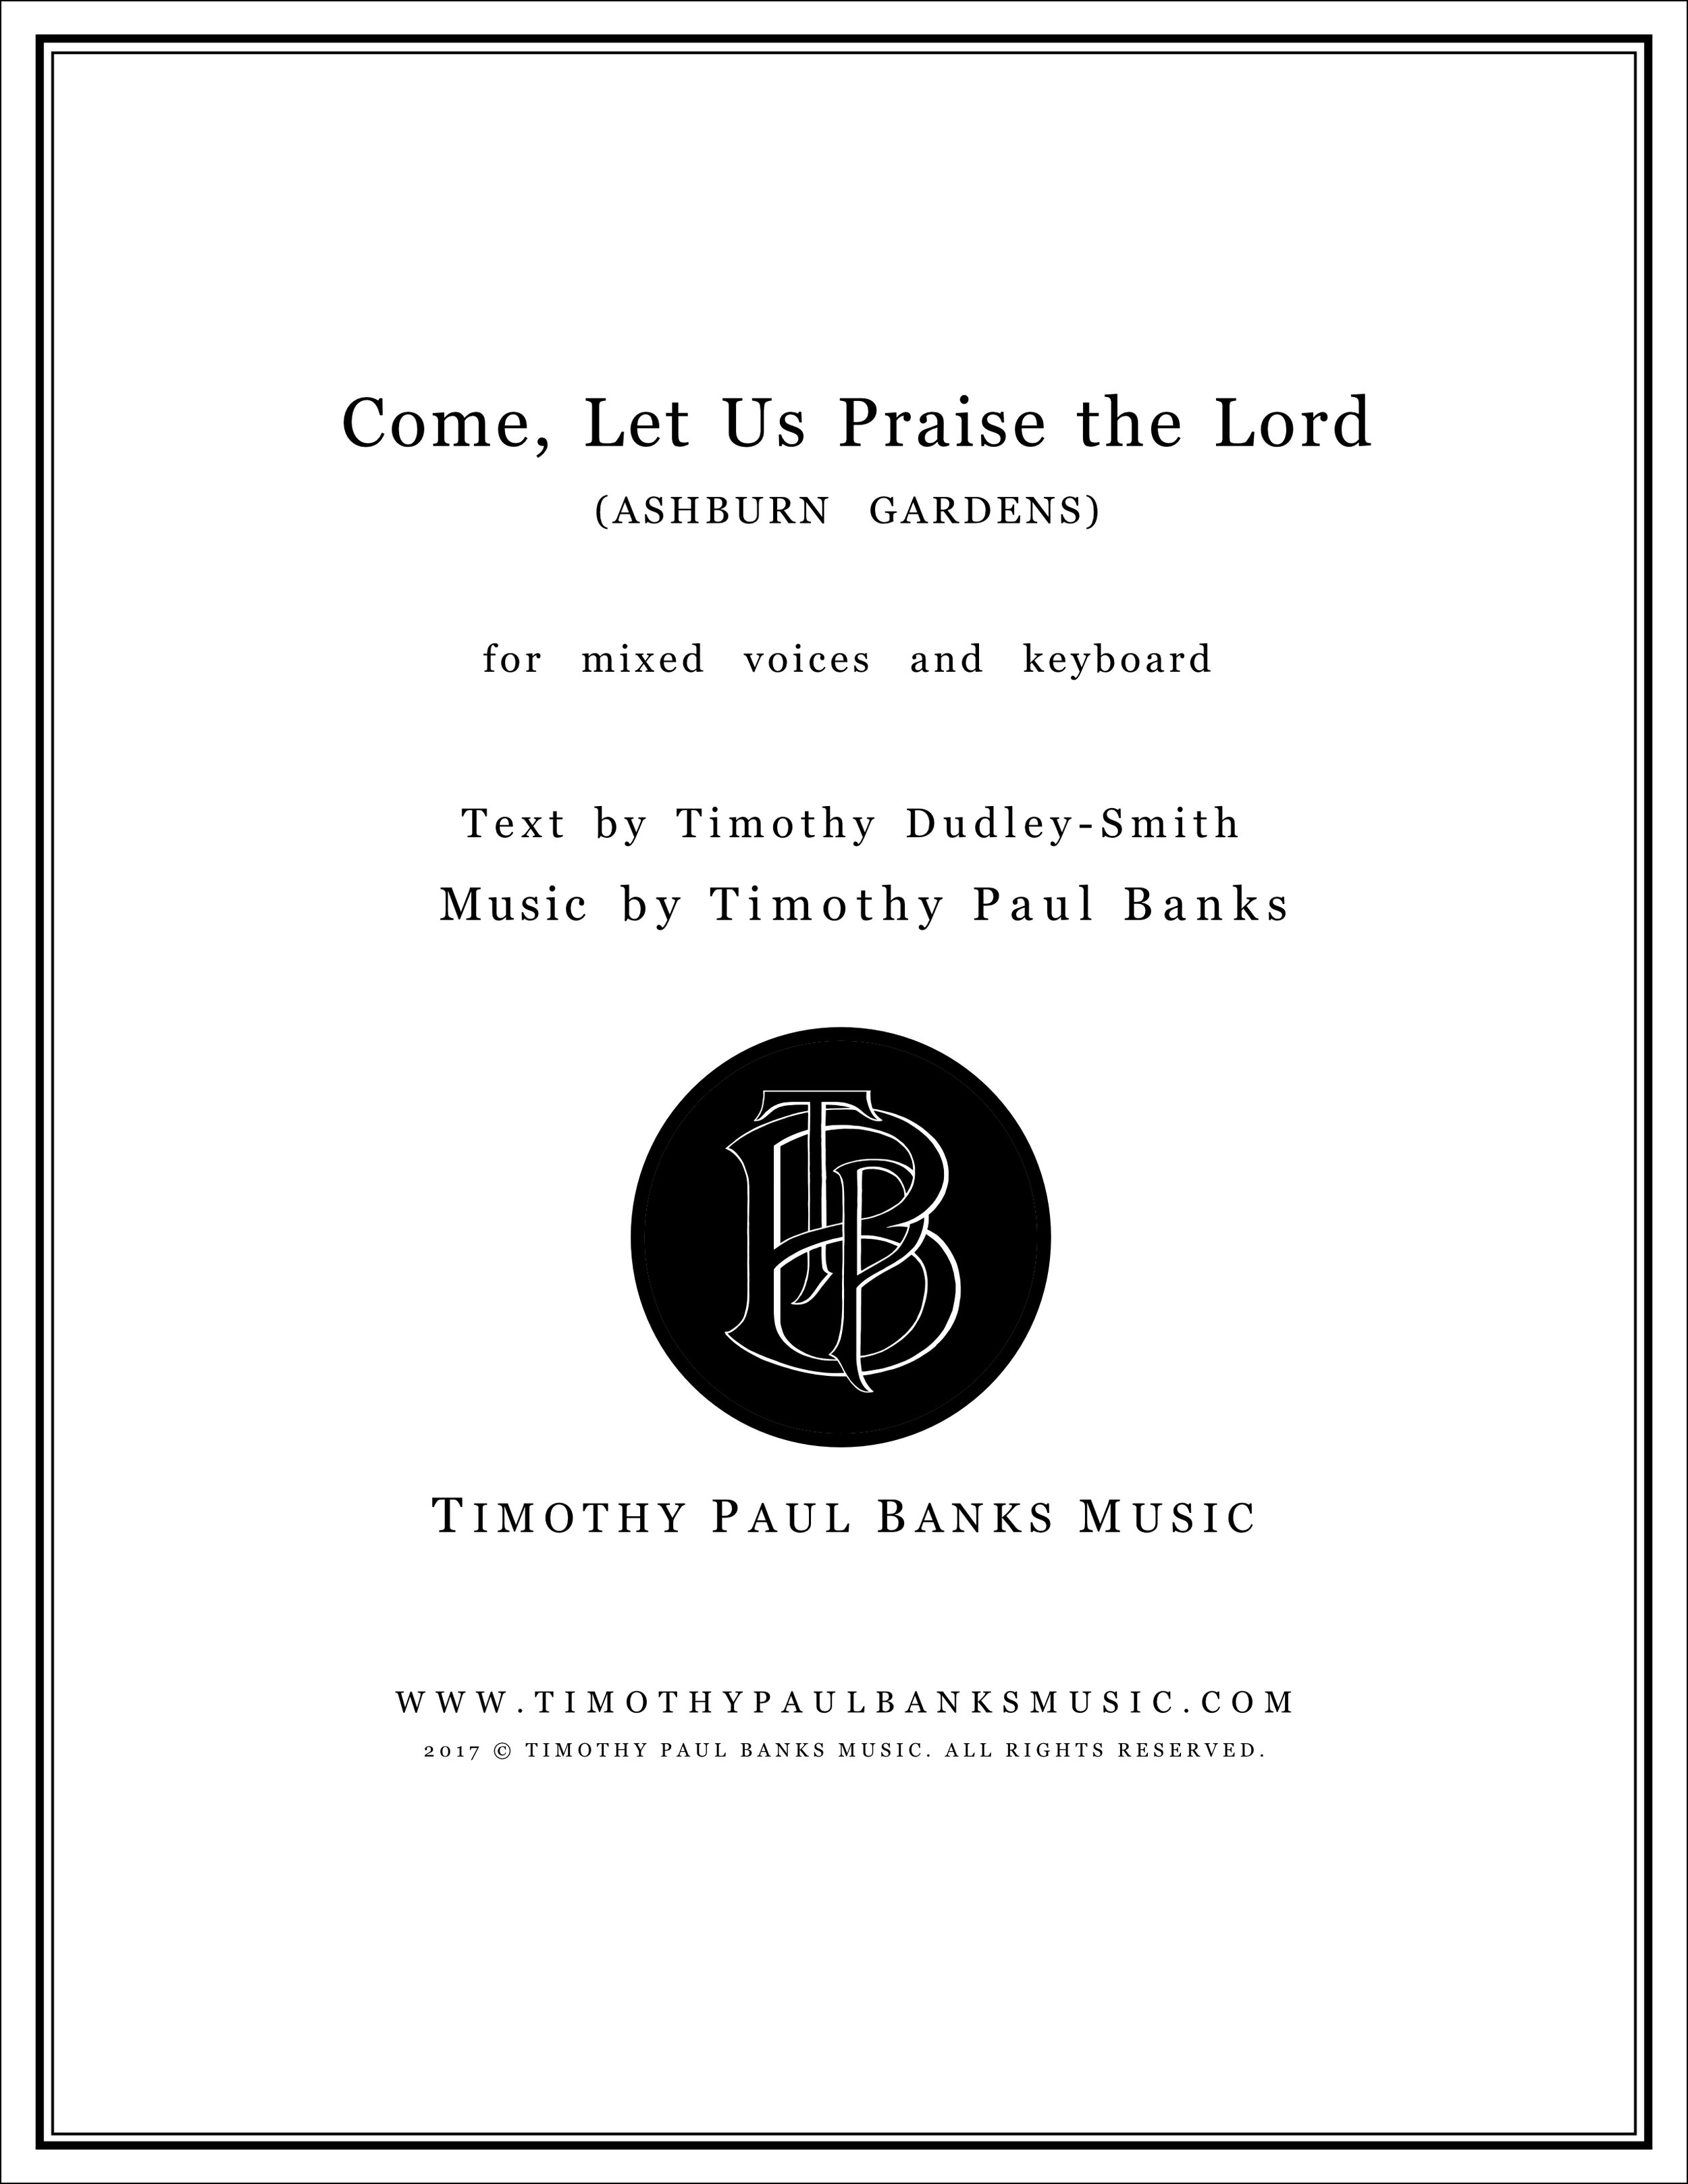 Come, Let Us Praise the Lord